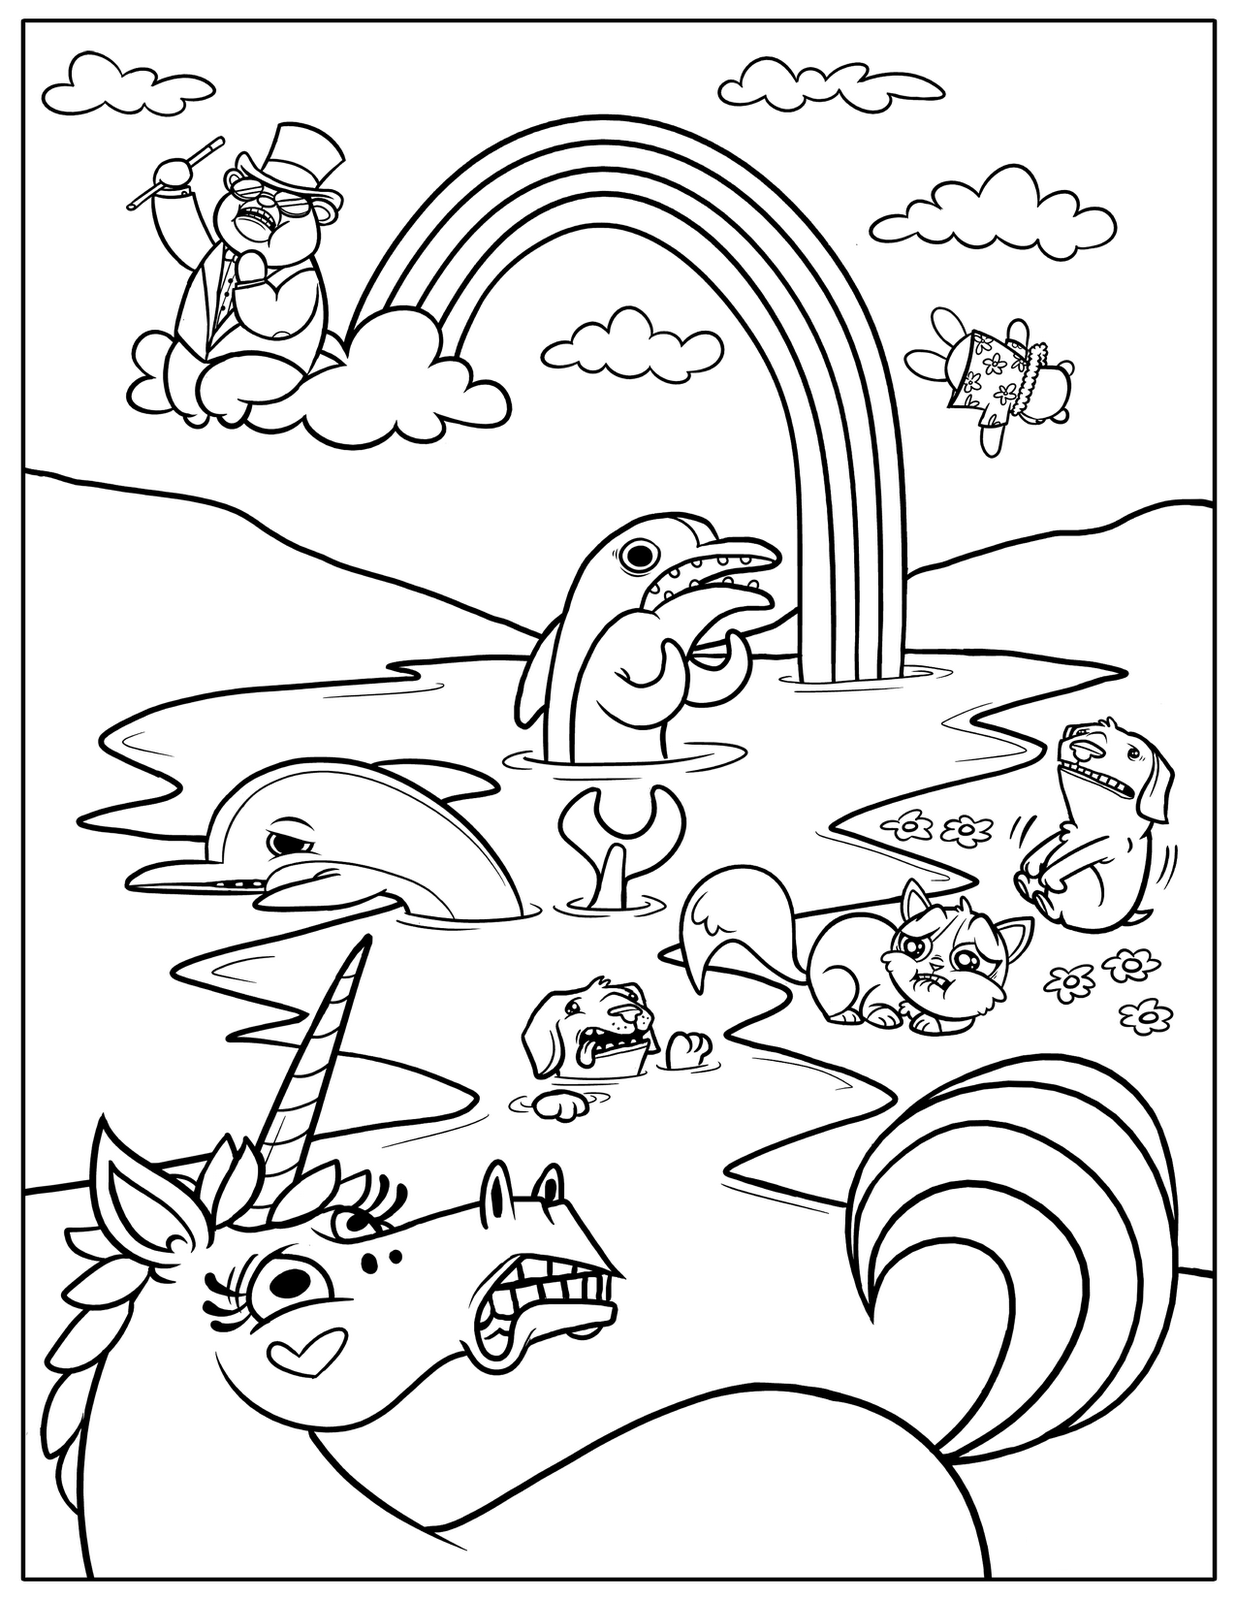 colouring in templates for toddlers rainbow coloring pages kids printable - Blank Coloring Pages Children